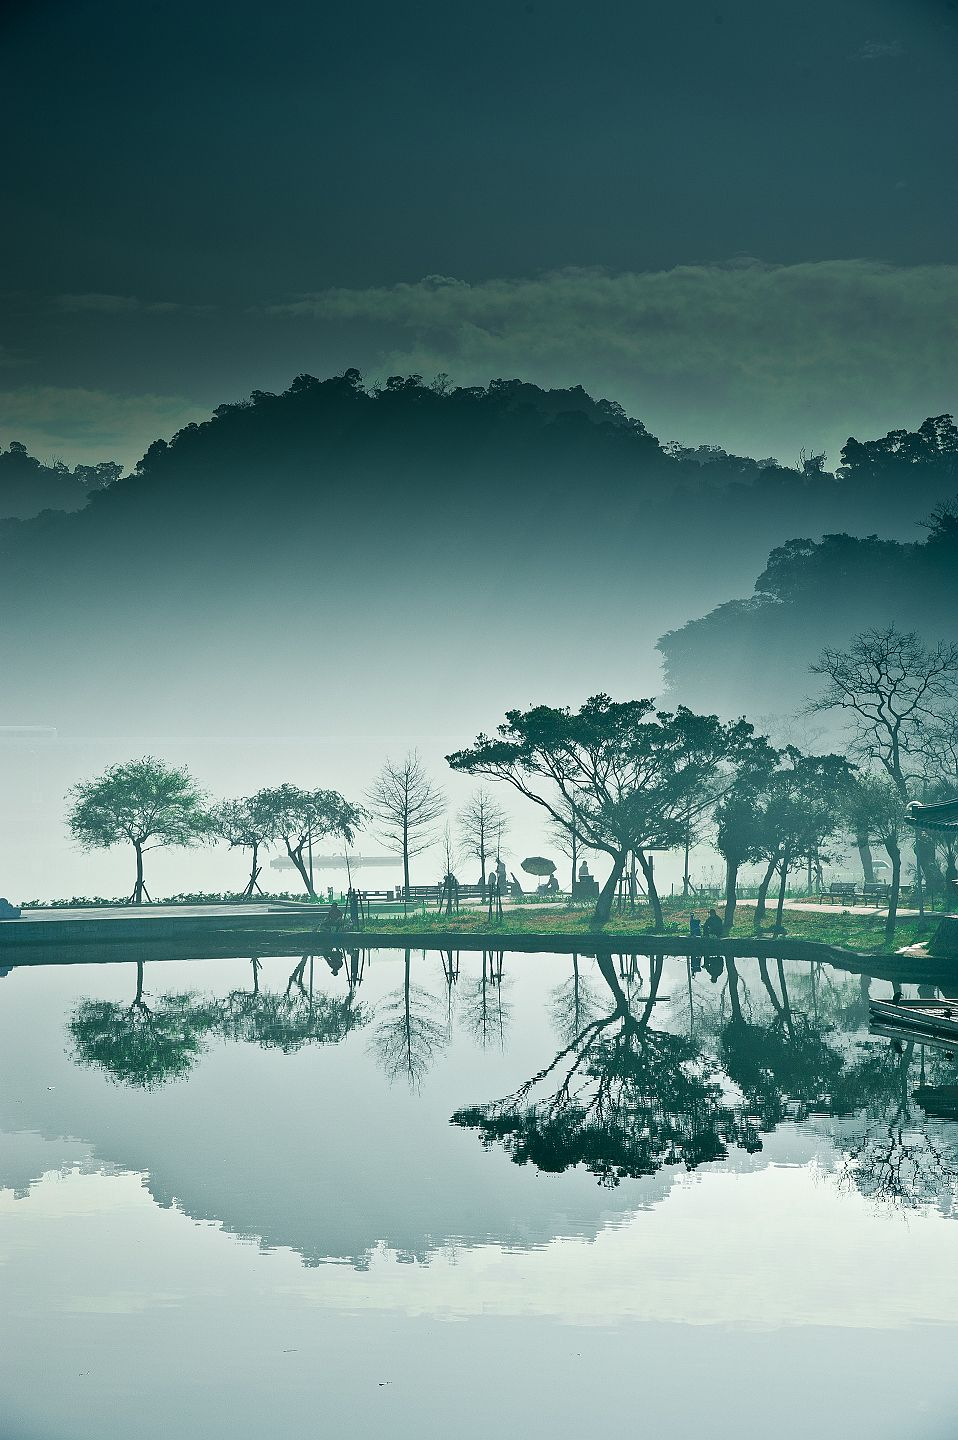 Breathtaking Photos Of The Moon Bridge In Taipei Taiwan Nature Scenery Beautiful Landscapes